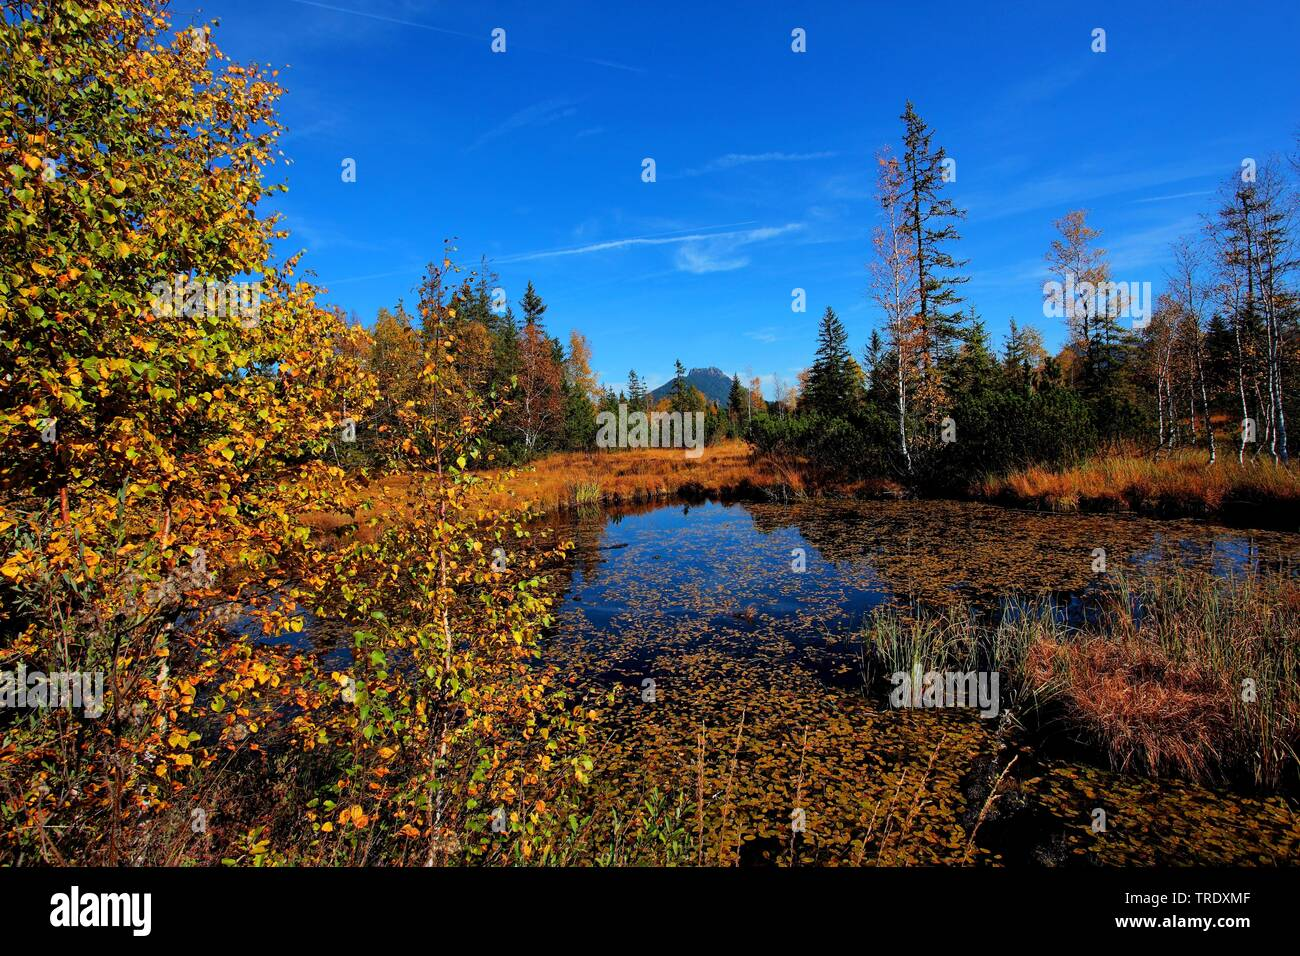 upland moor Kematsriedmoos in autumn, Germany, Bavaria, Allgaeu Stock Photo